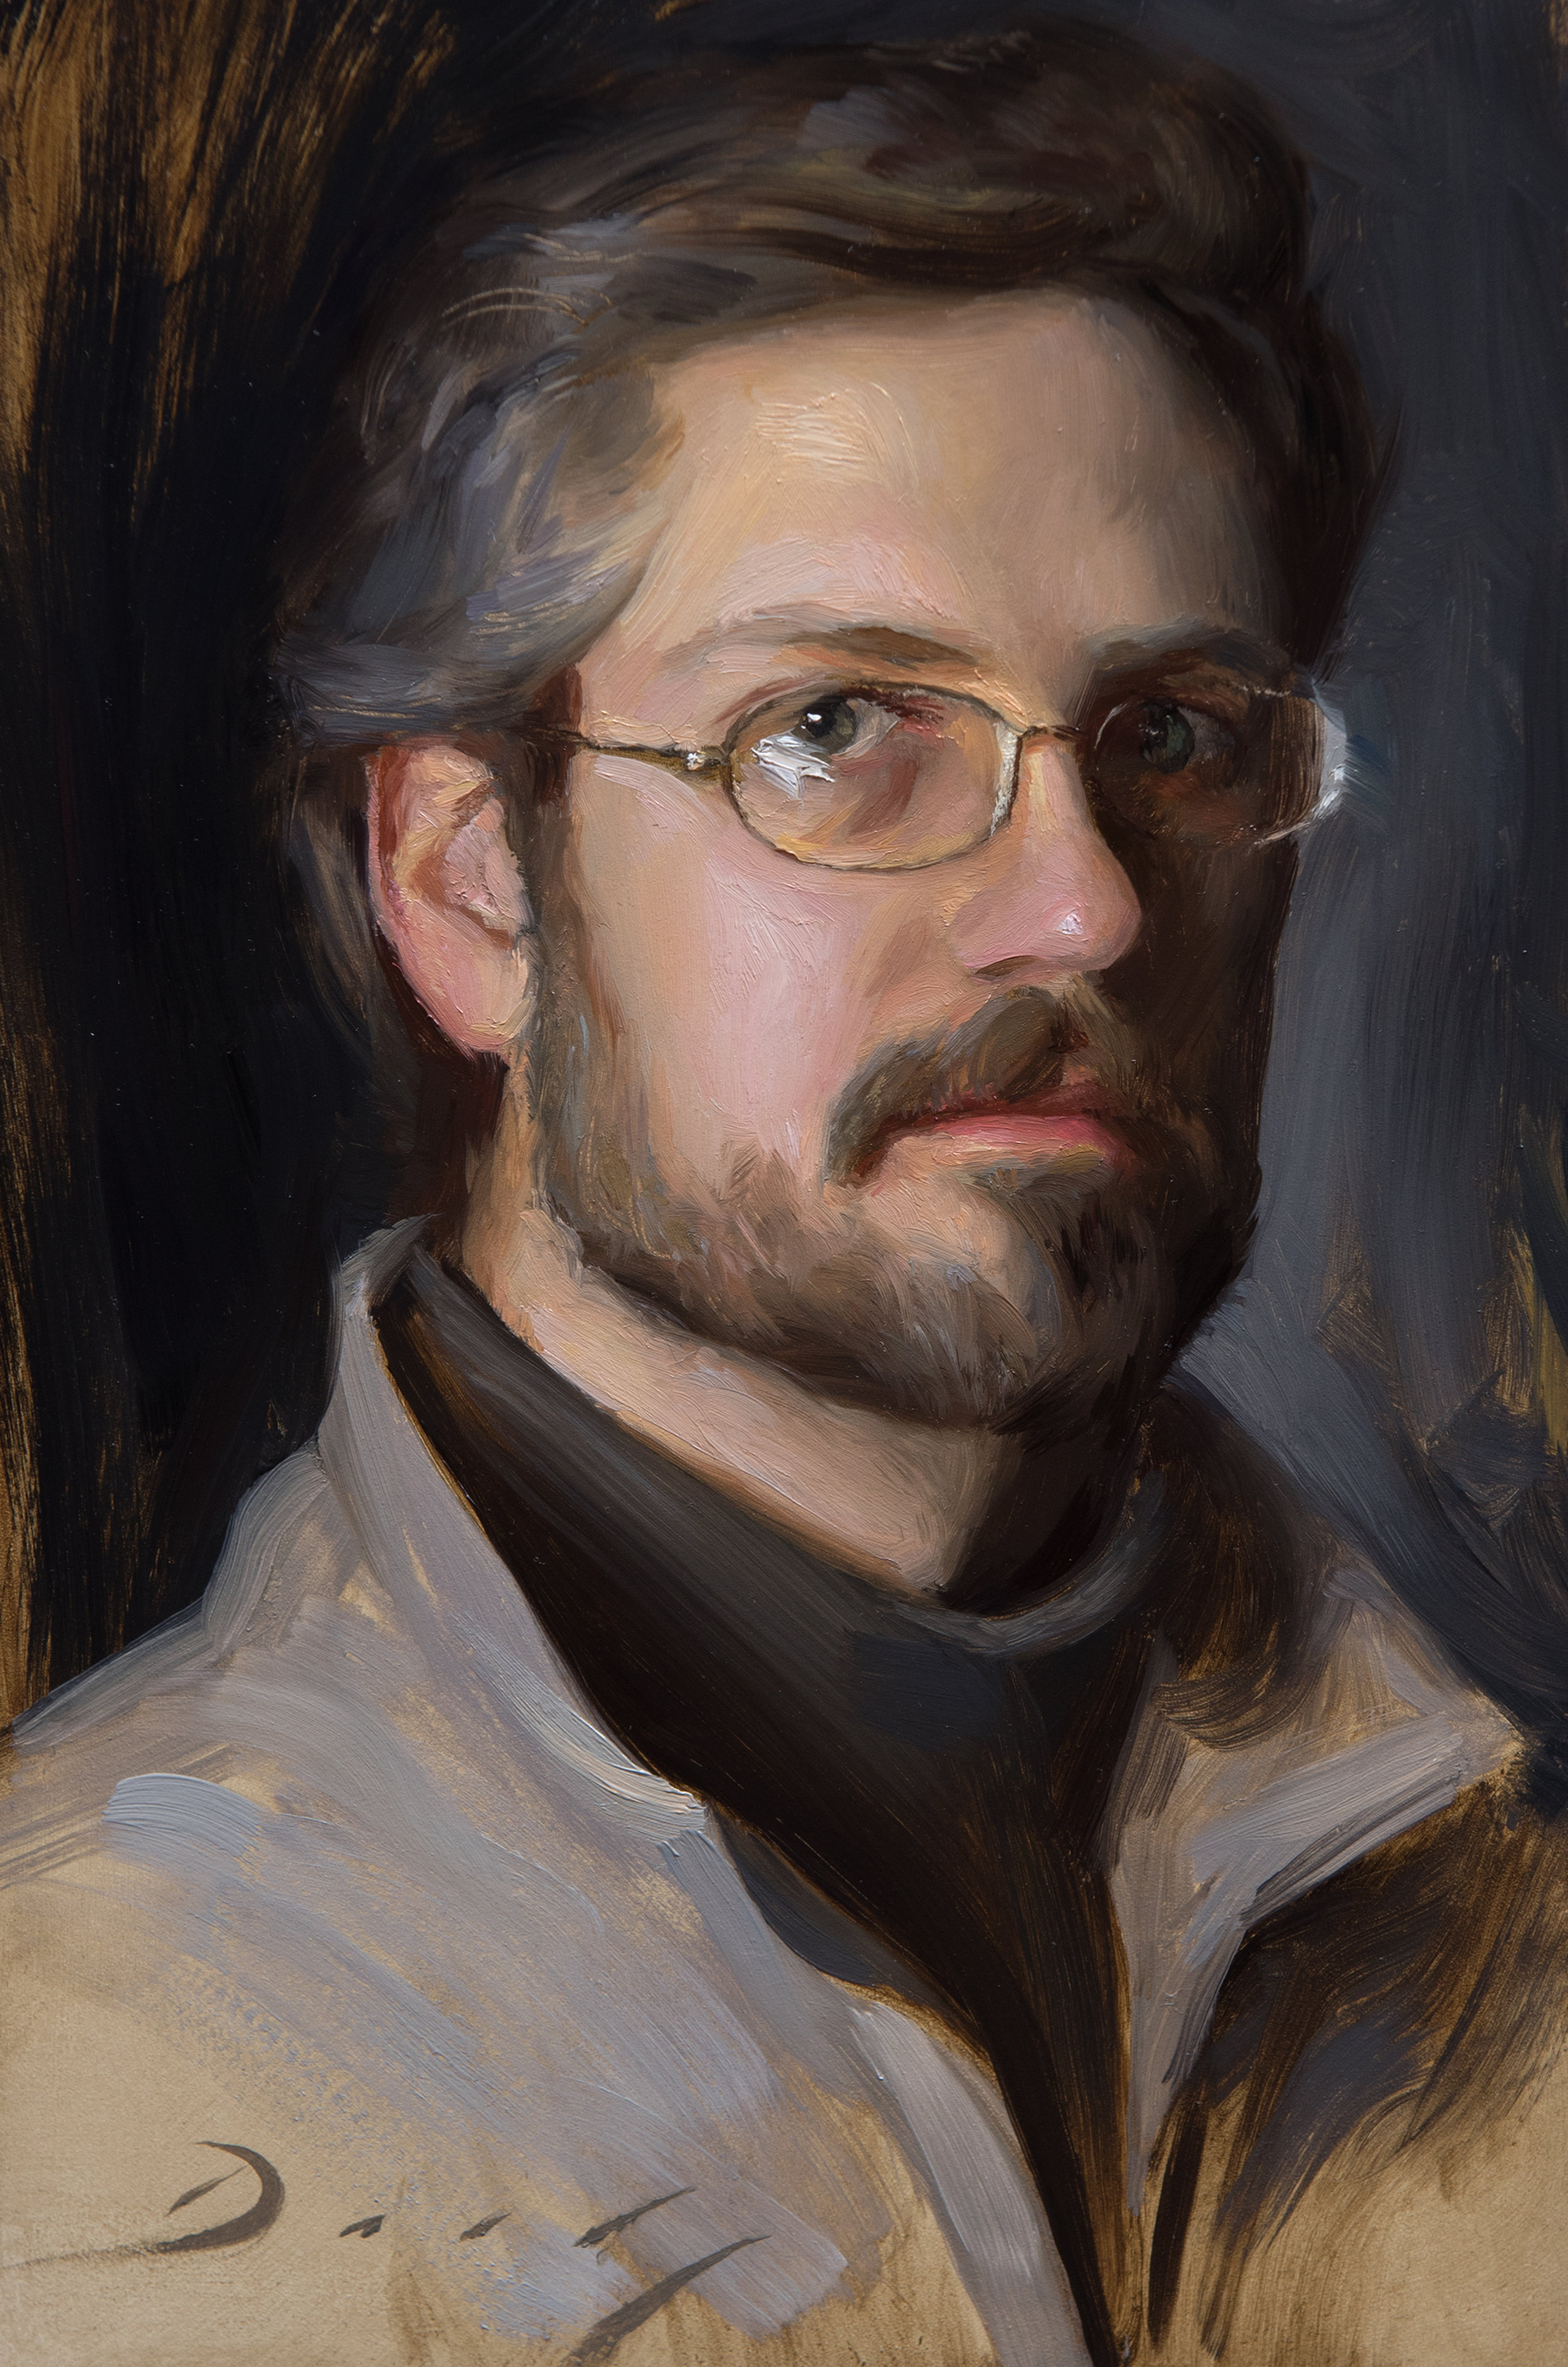 Self Portrait at 34, 6x9, by Joseph Daily